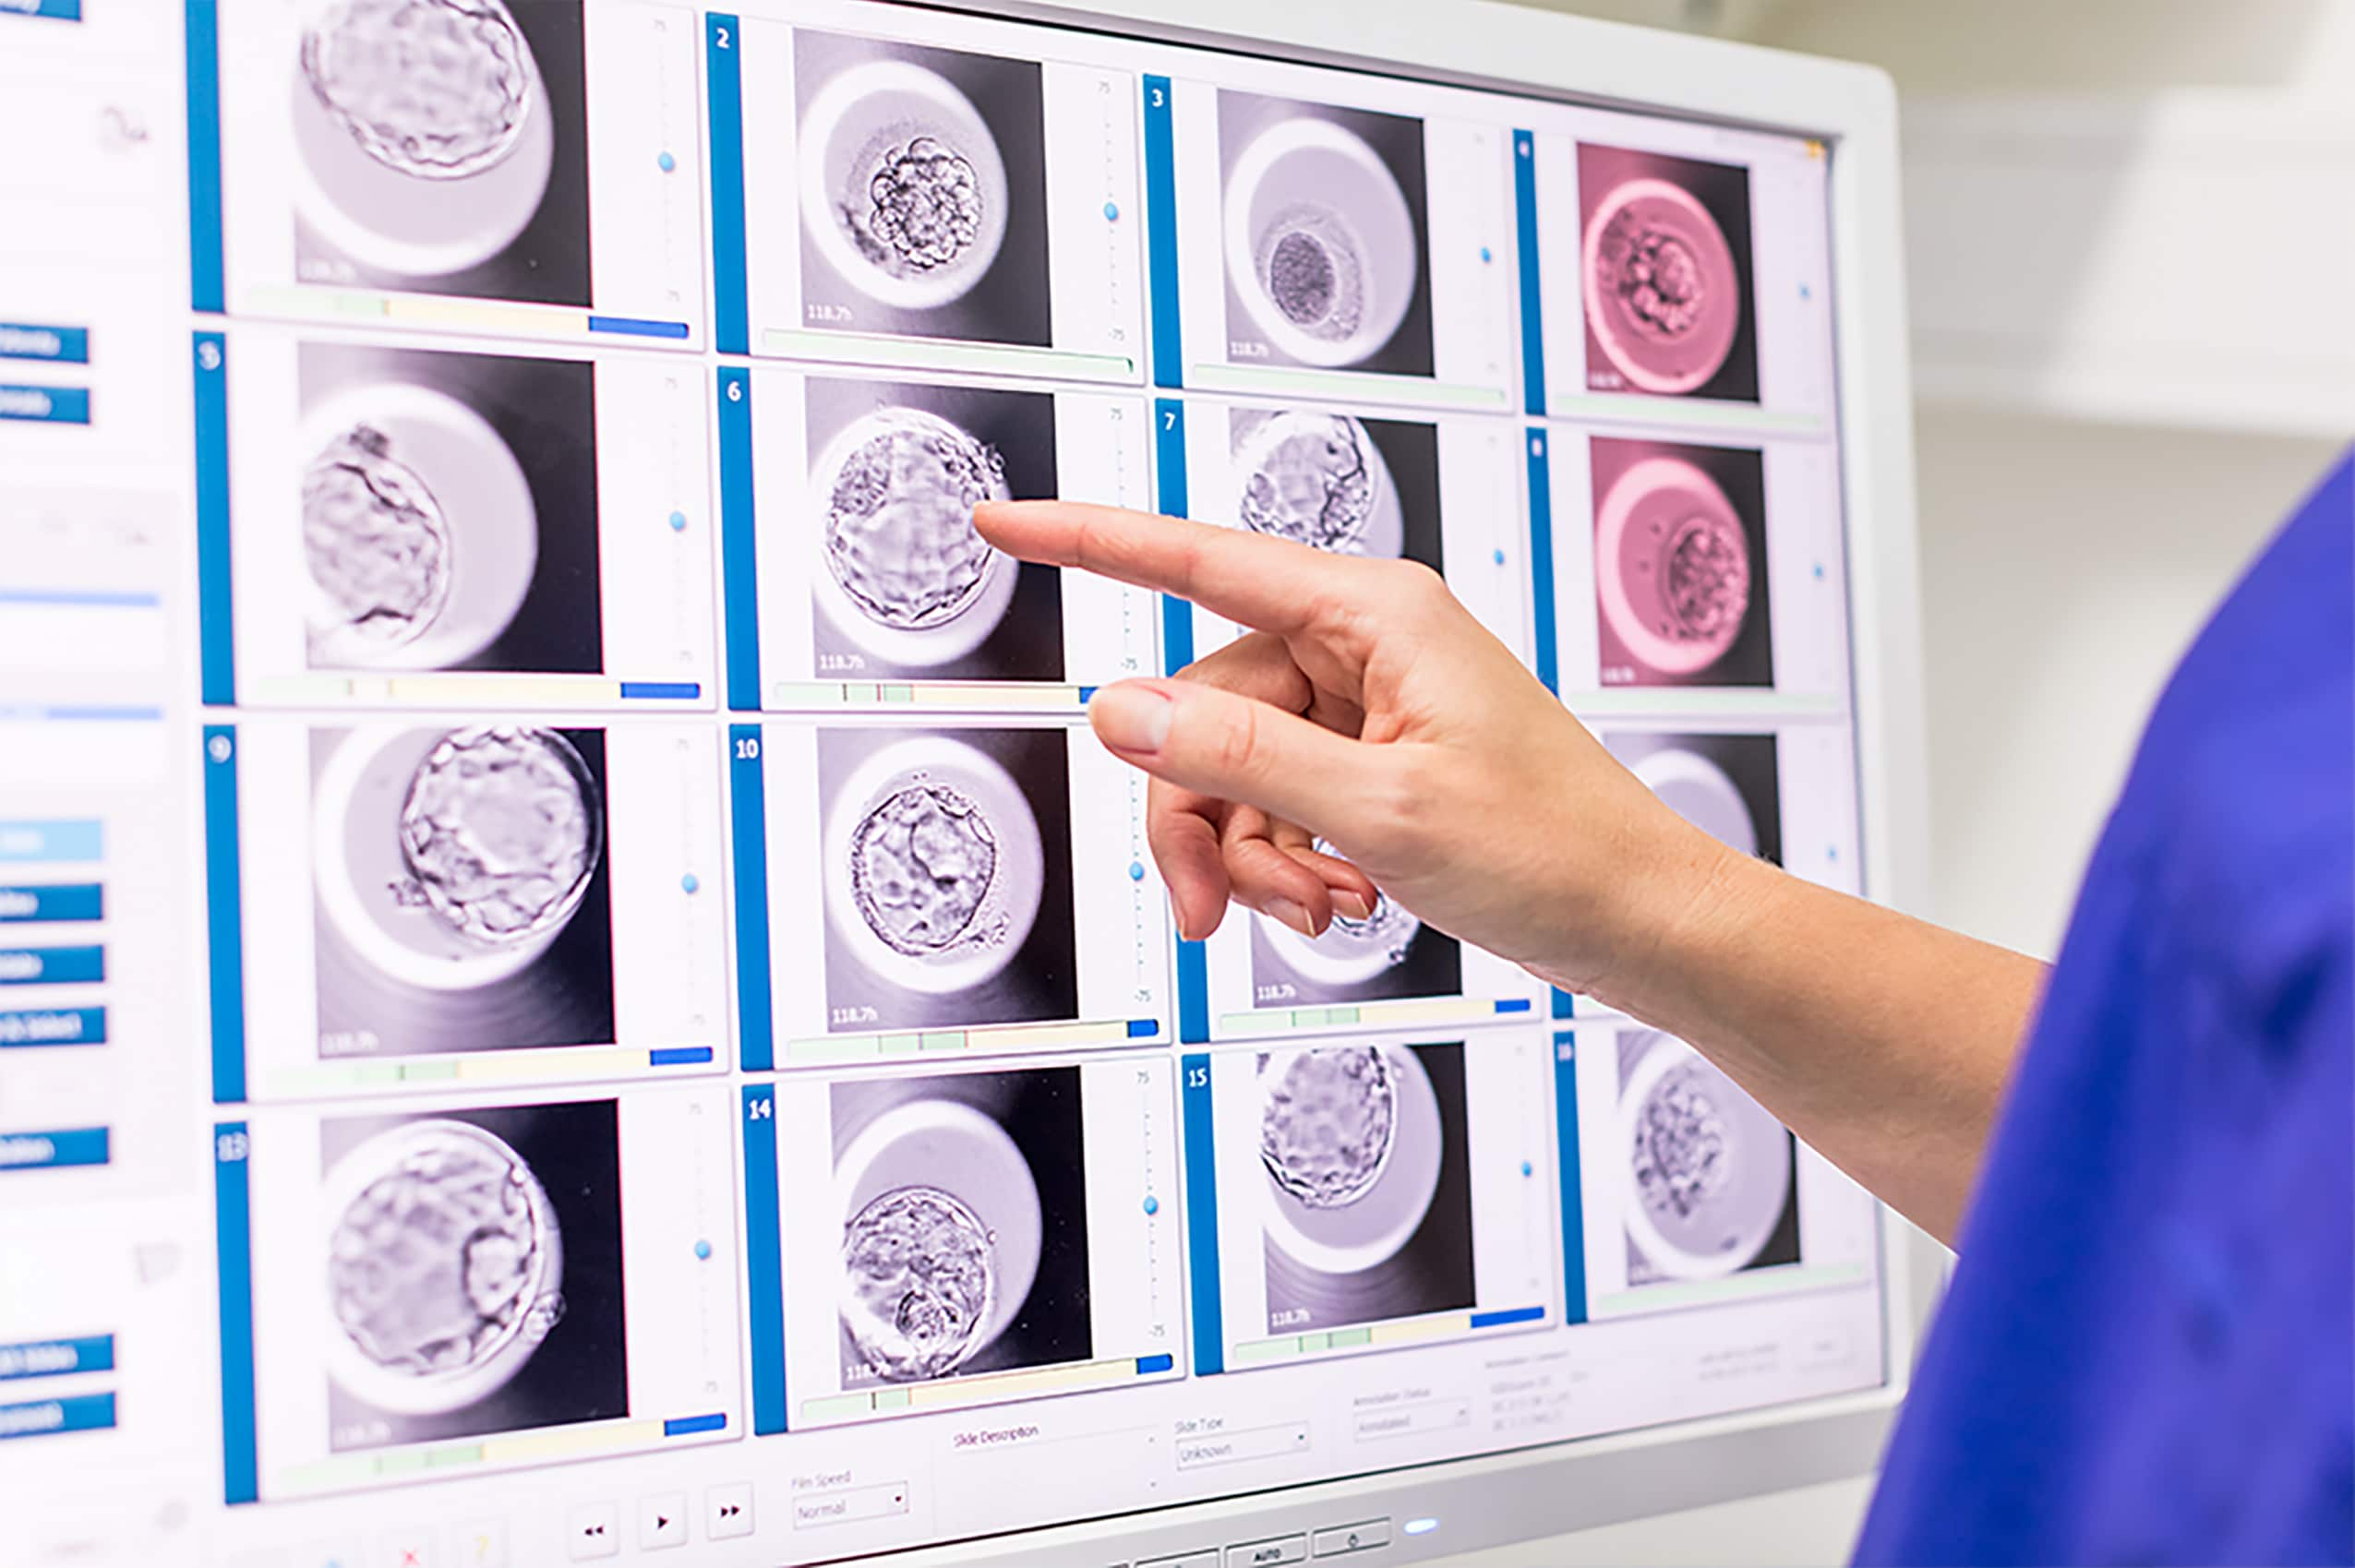 IVF Doctor Looking at Embryoscope Scans at Cyprus IVF Centre